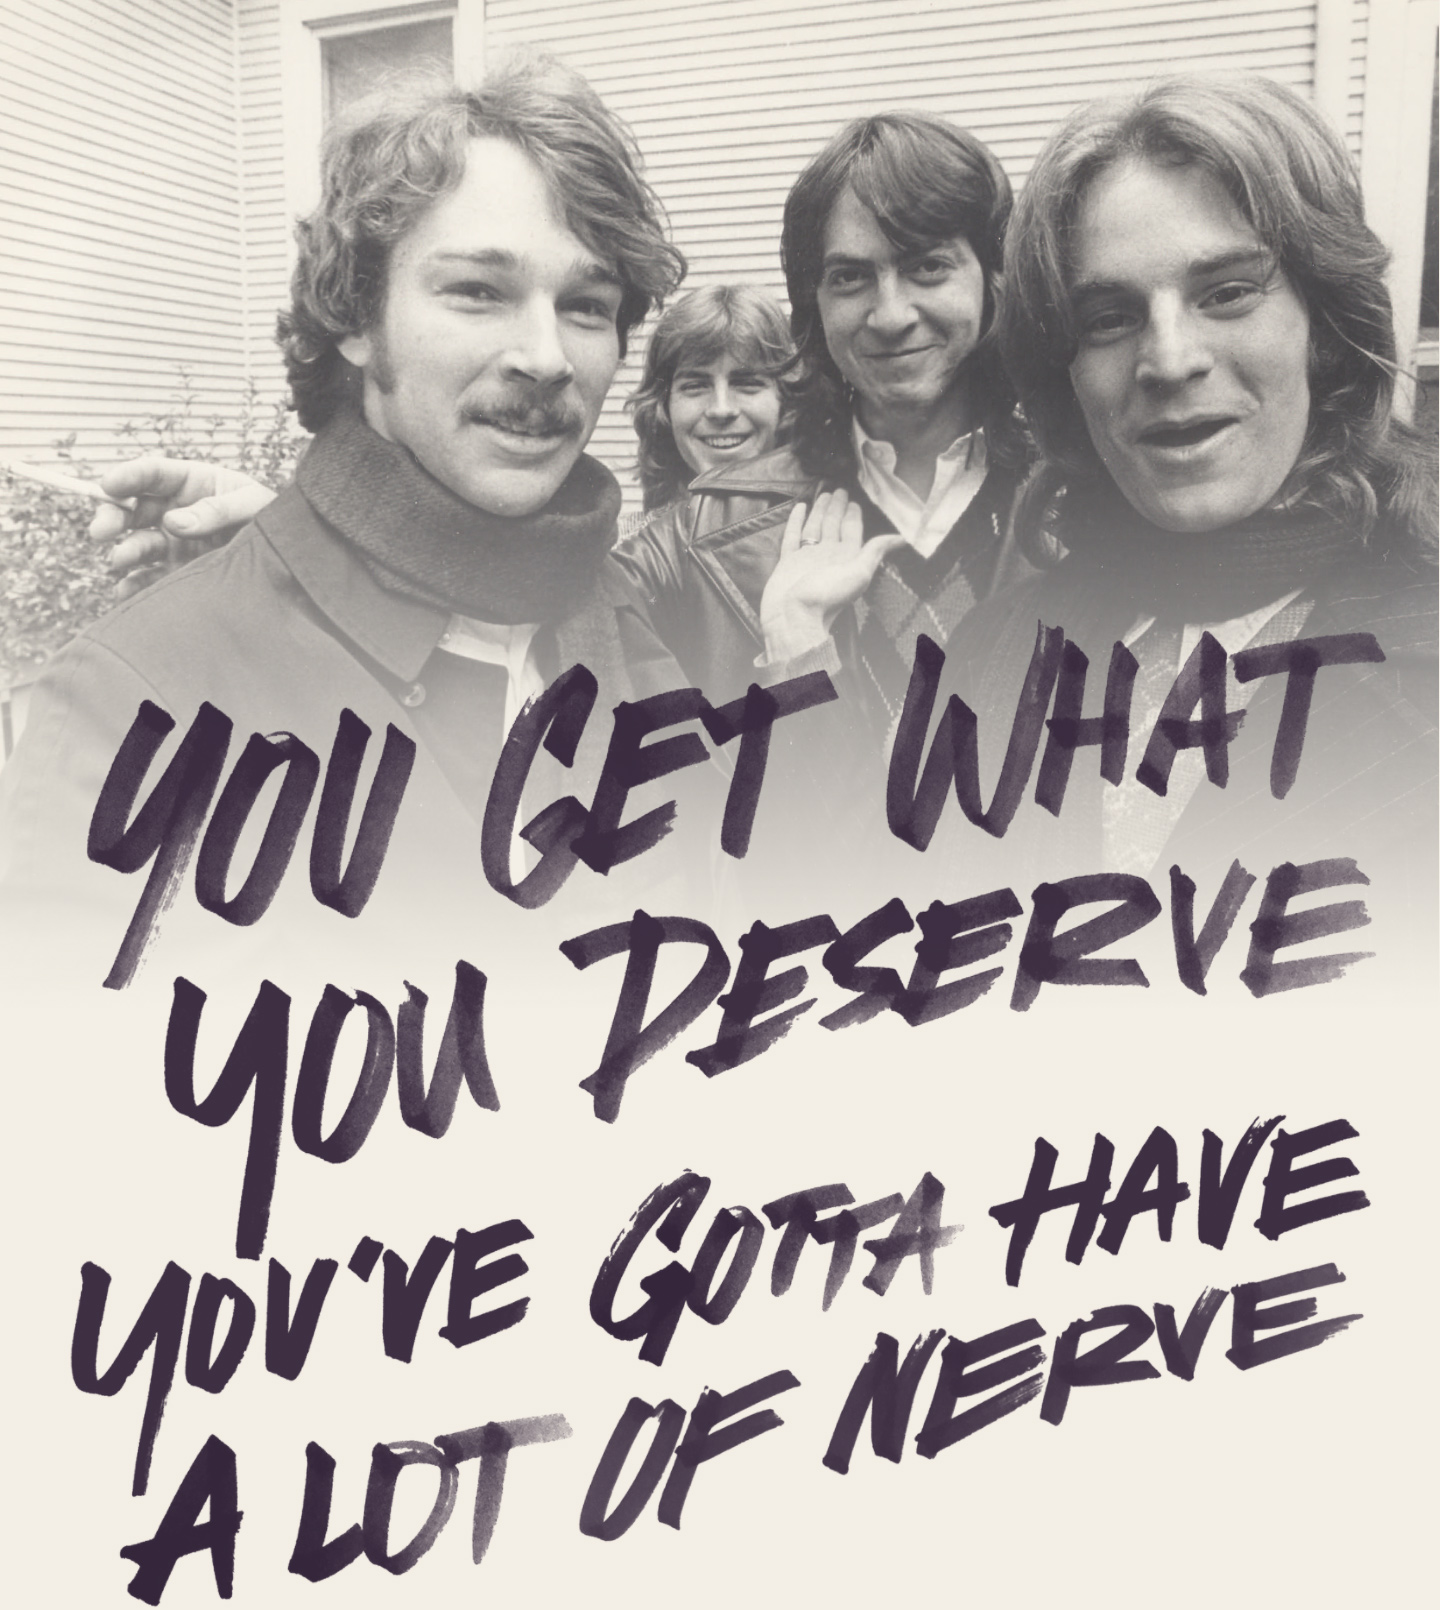 You get what you deserve/You've gotta have a lot of nerve